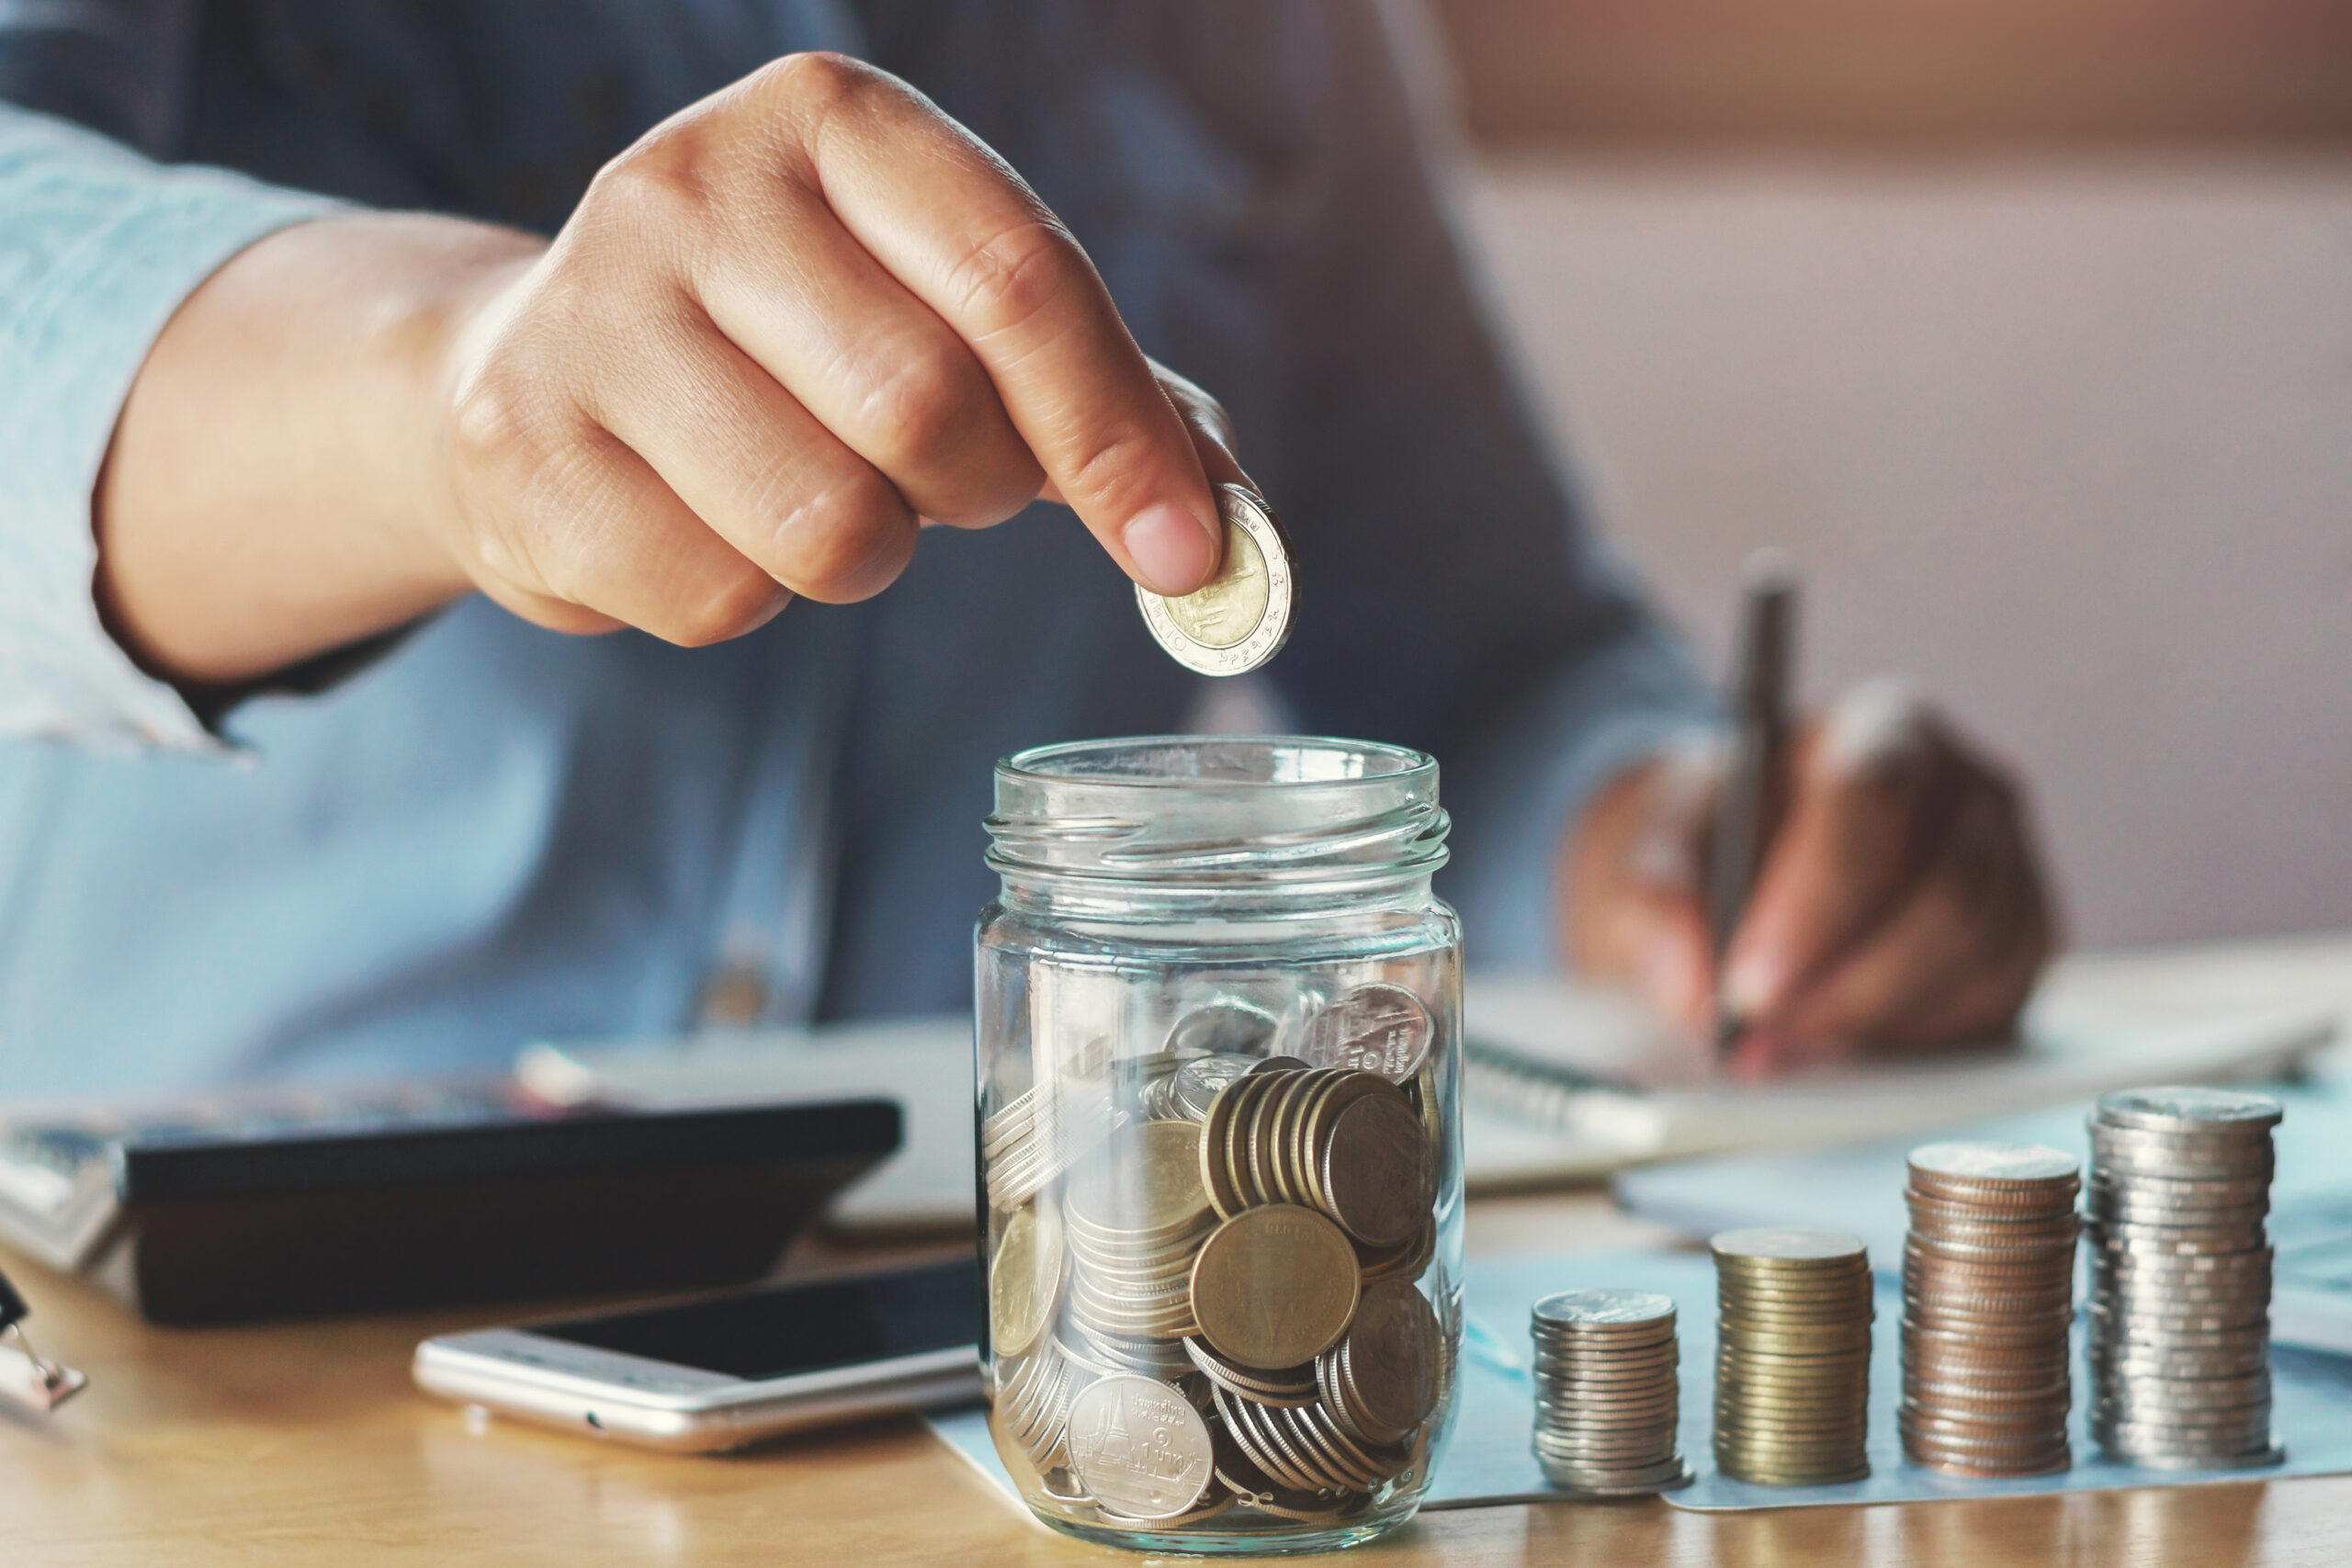 retirement business accounting saving money concept